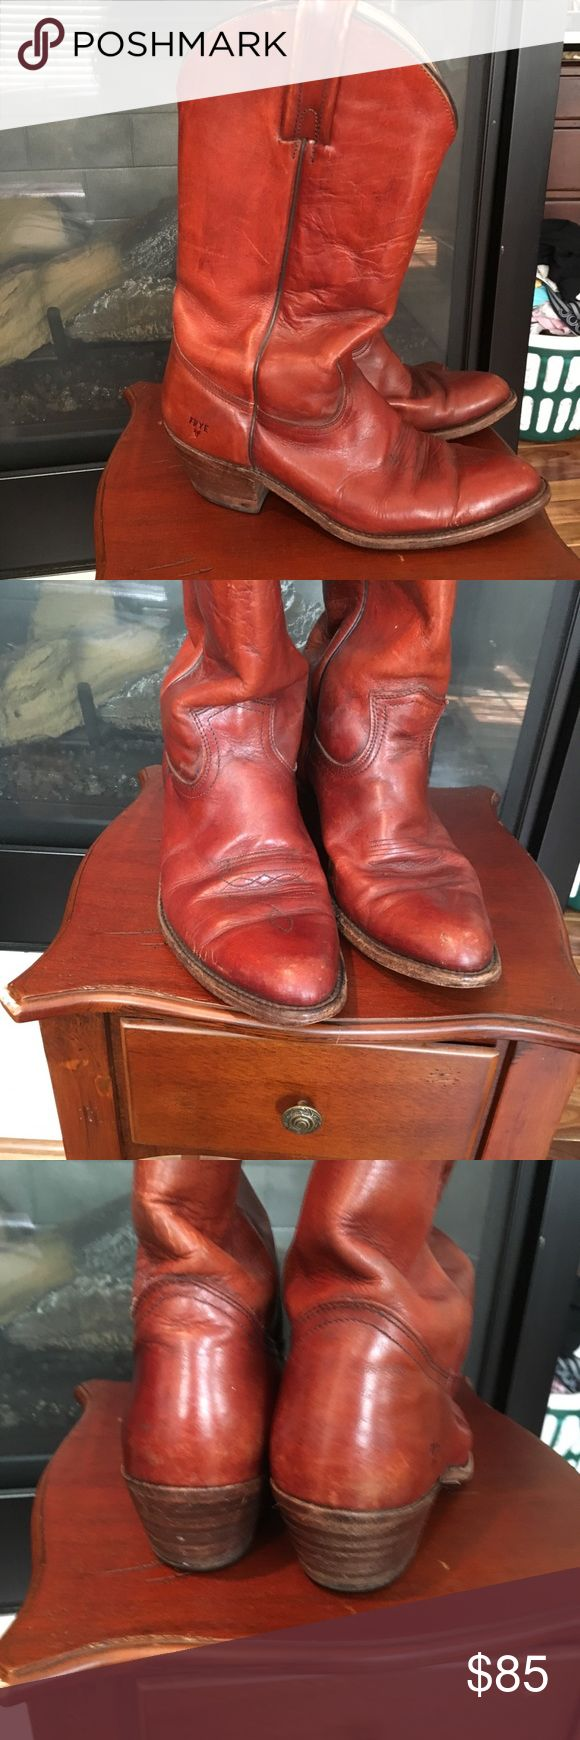 Frye Cowboy Boots #2356 Frye Cowboy Boots #2356. Please note these are Men's size 10 Frye Shoes Cowboy & Western Boots